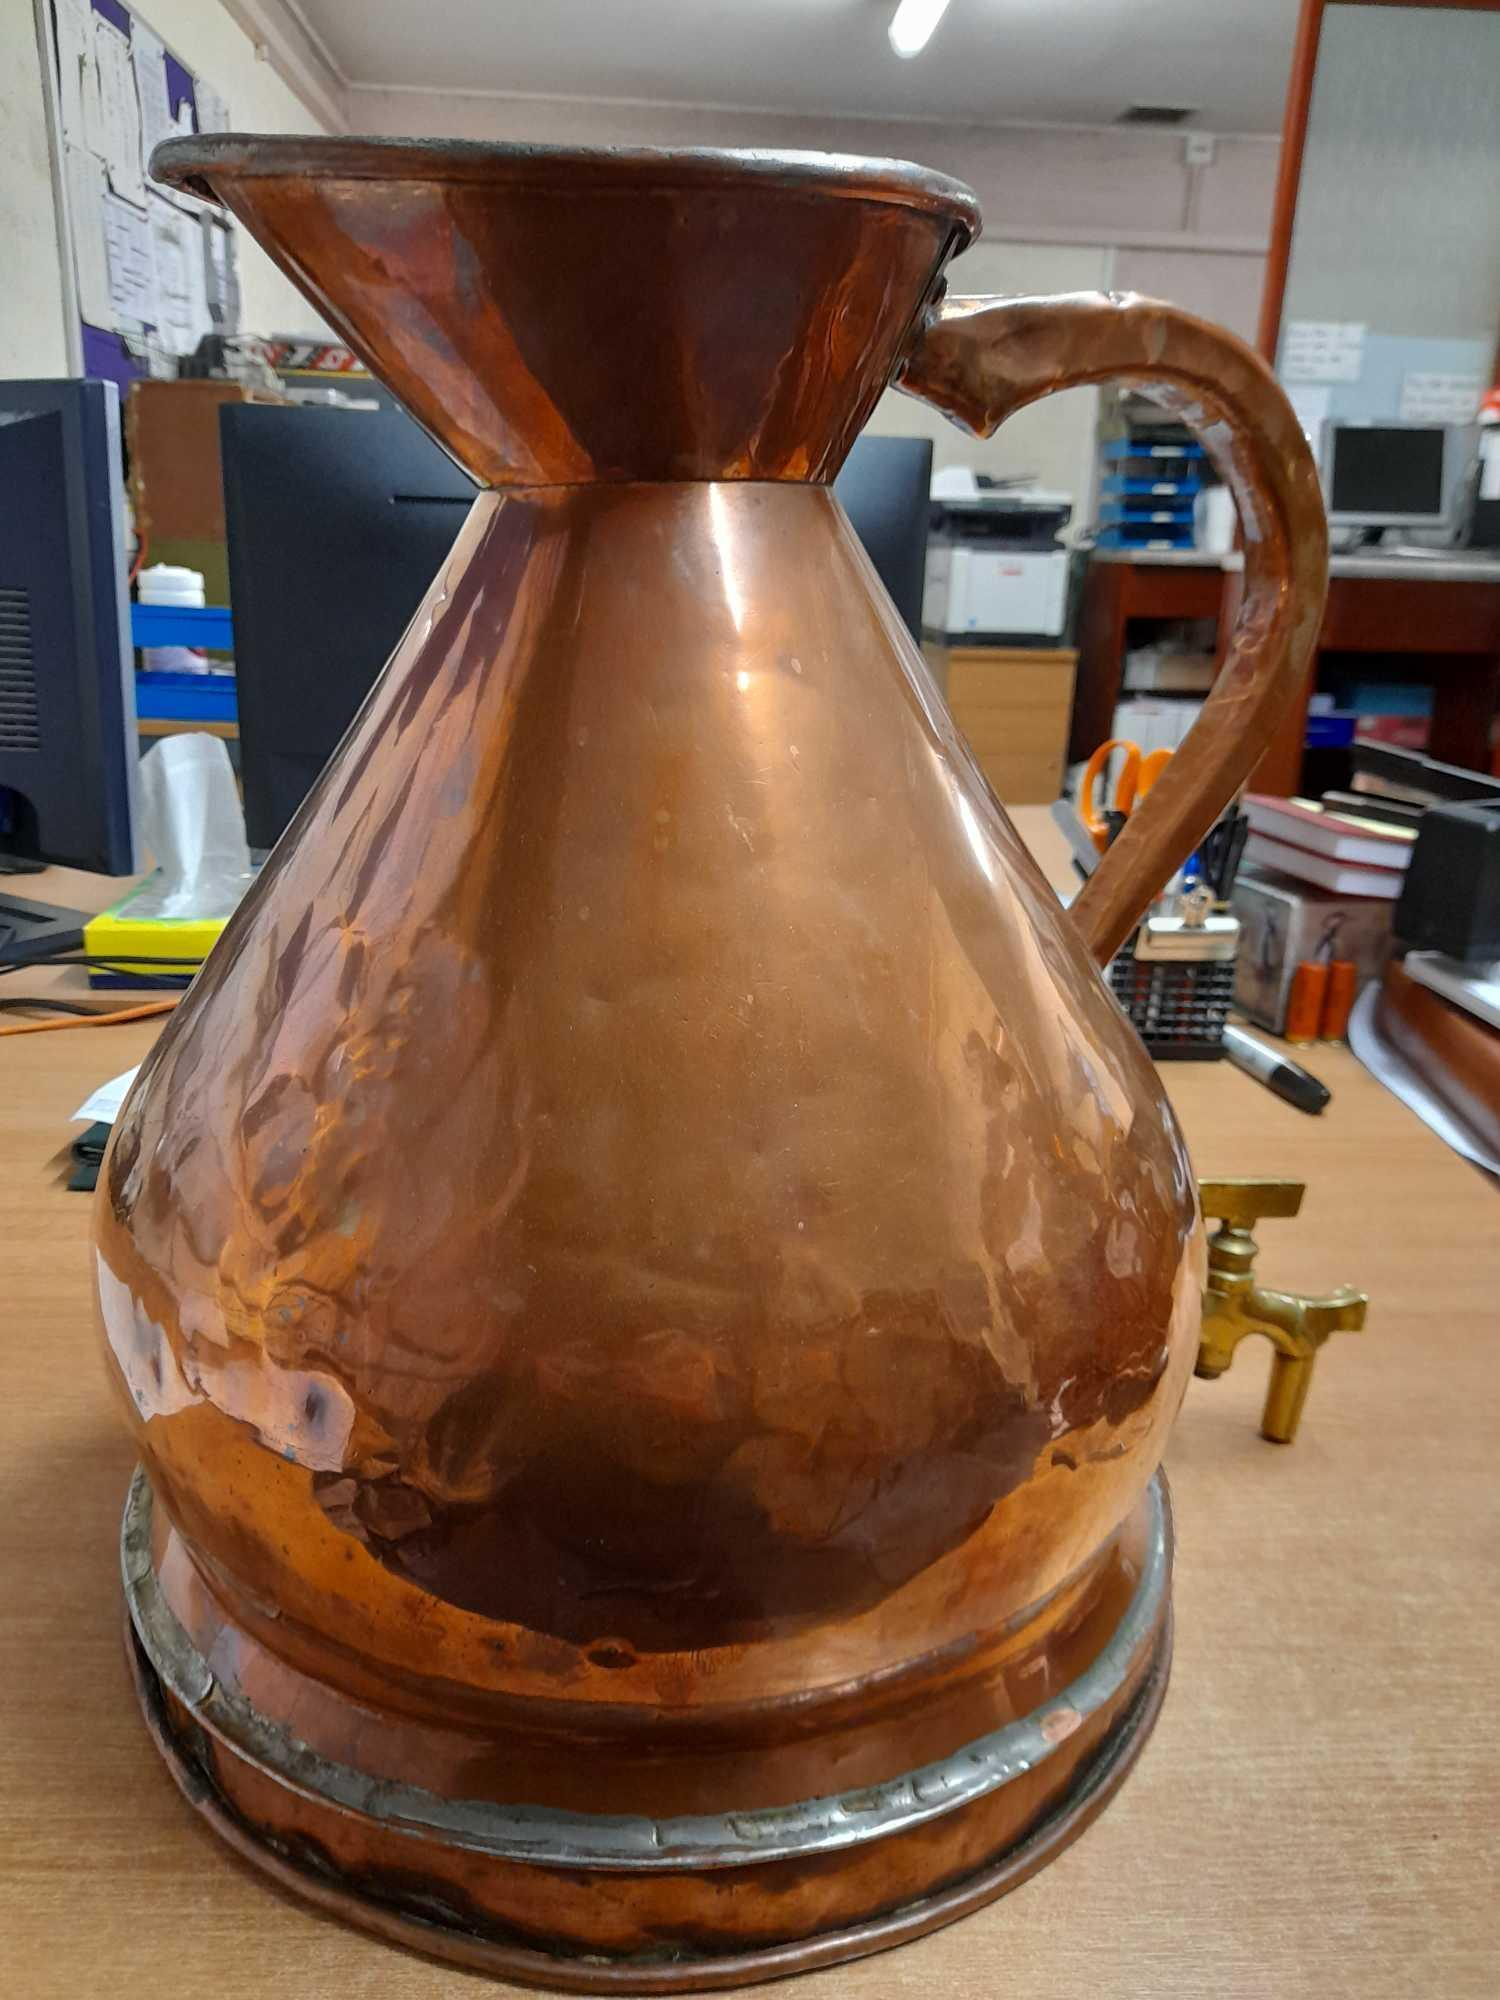 4 GALLON COPPER WHISKY MEASURING JUG - Image 3 of 8